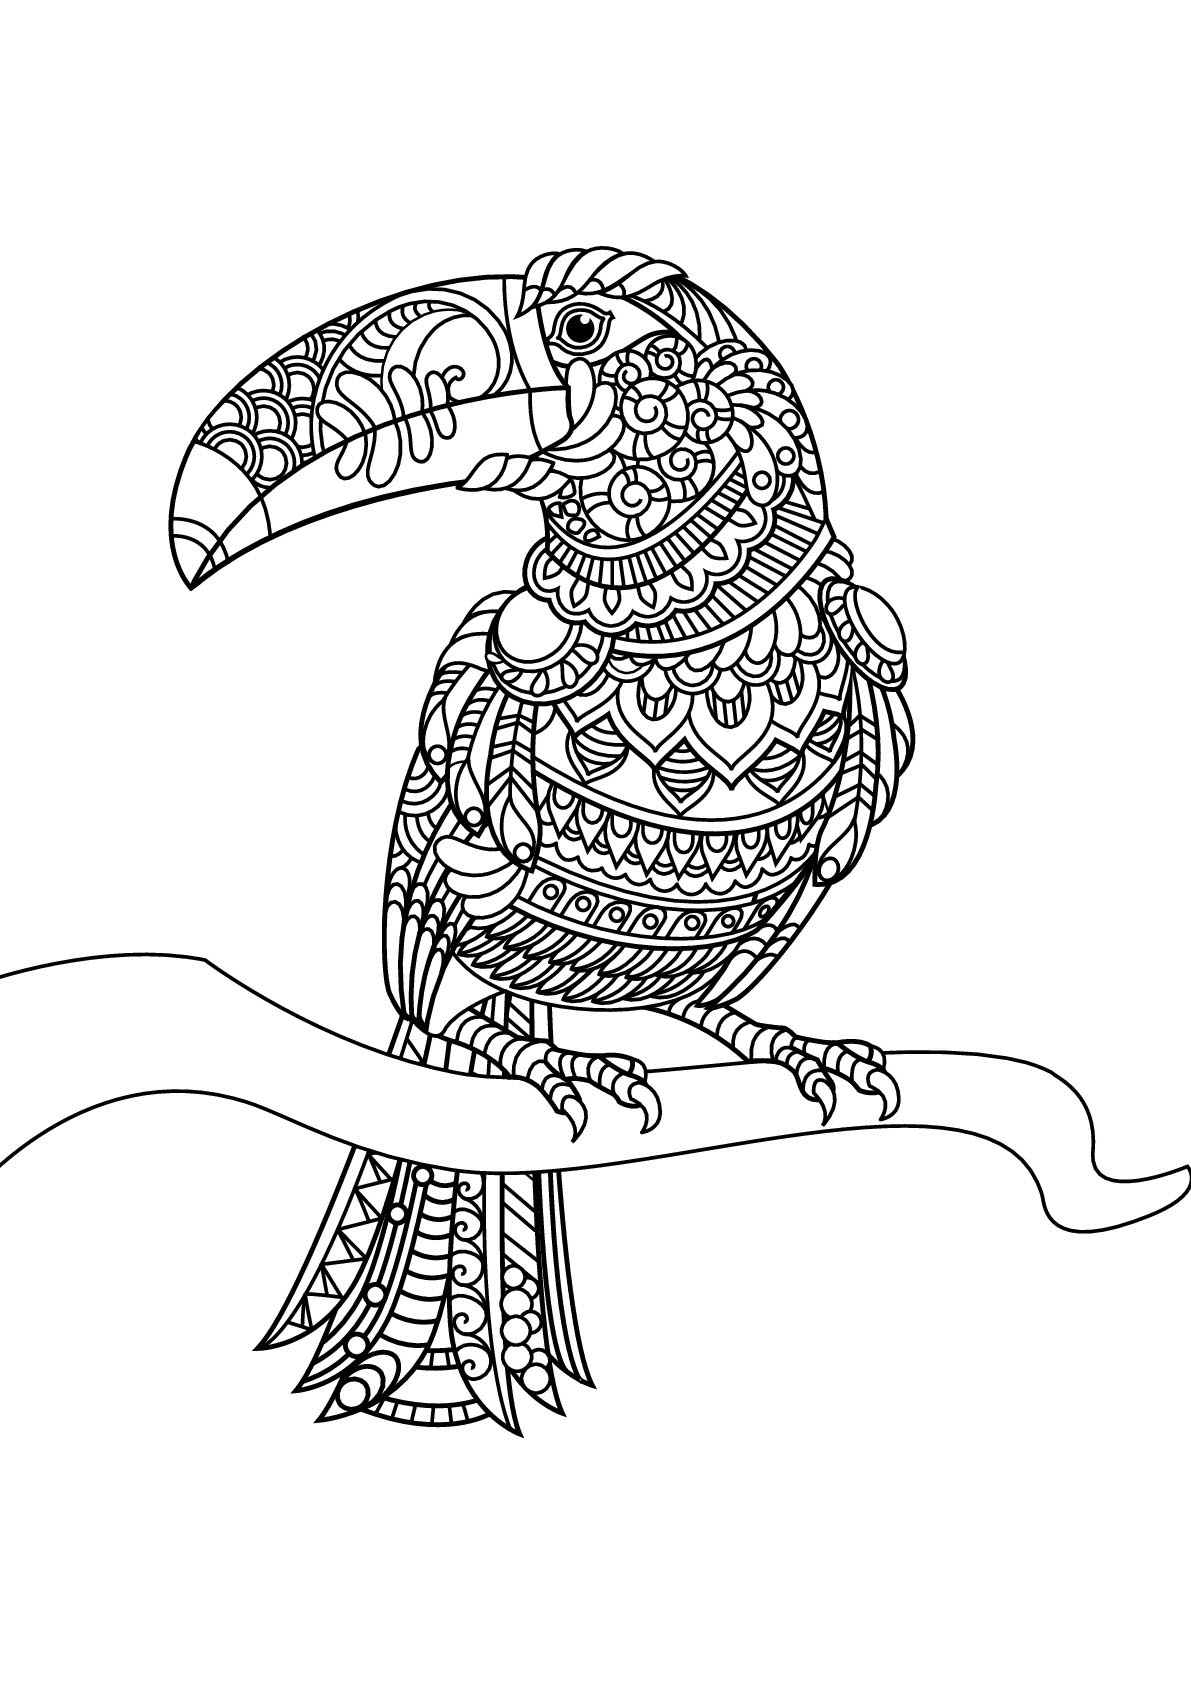 This is a graphic of Universal bird coloring pages for kids